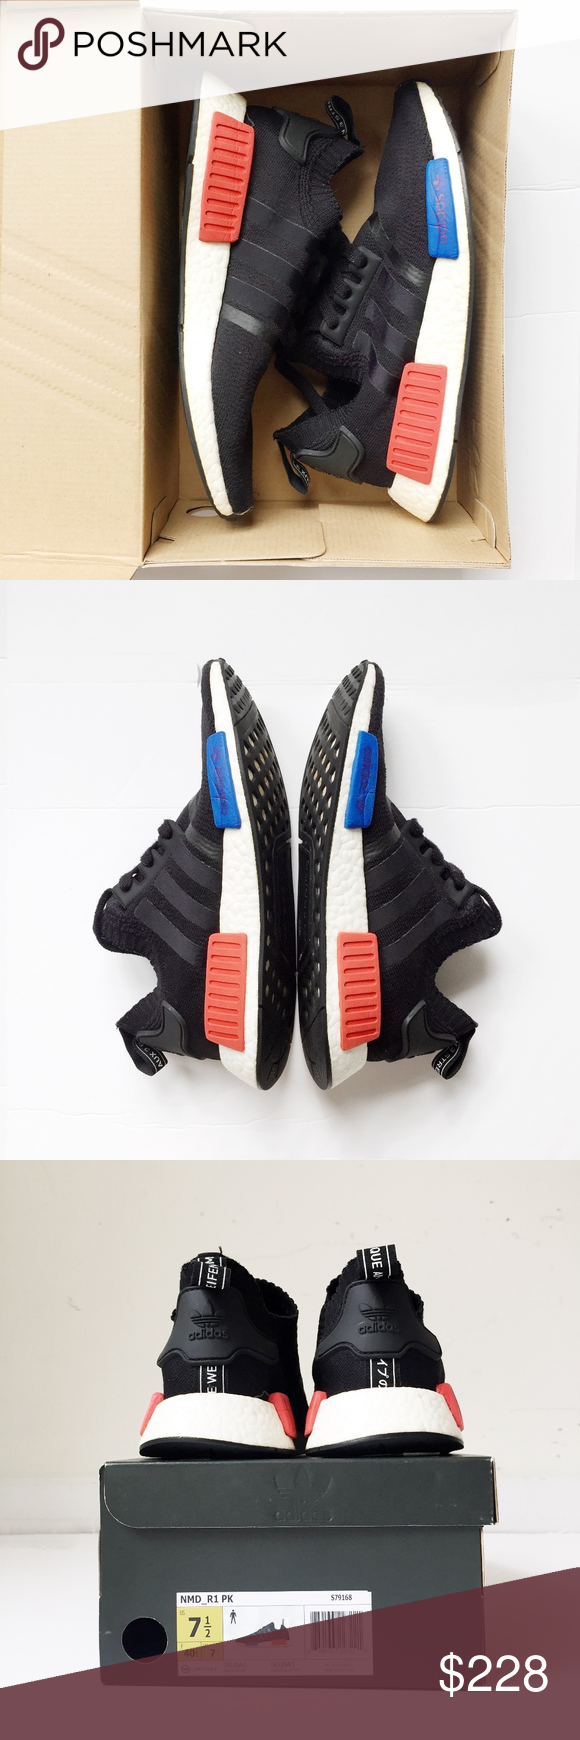 Details about Adidas Nomad Runer Primeknit NMD Core Black Lush Red S79168